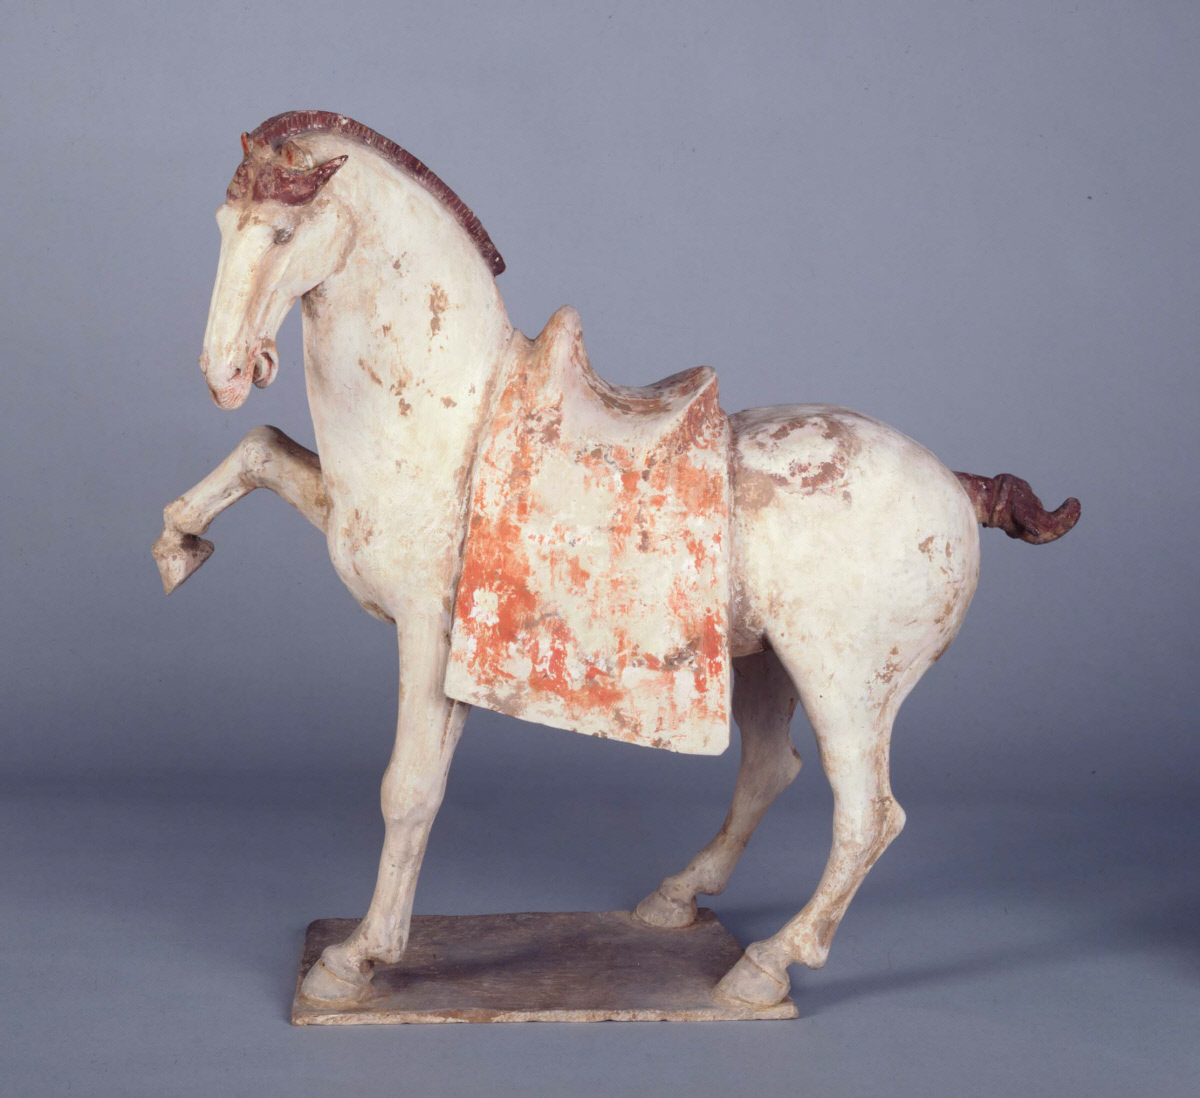 Chinese (Tang Dynasty, 618-907), Dancing Horse, 7th century